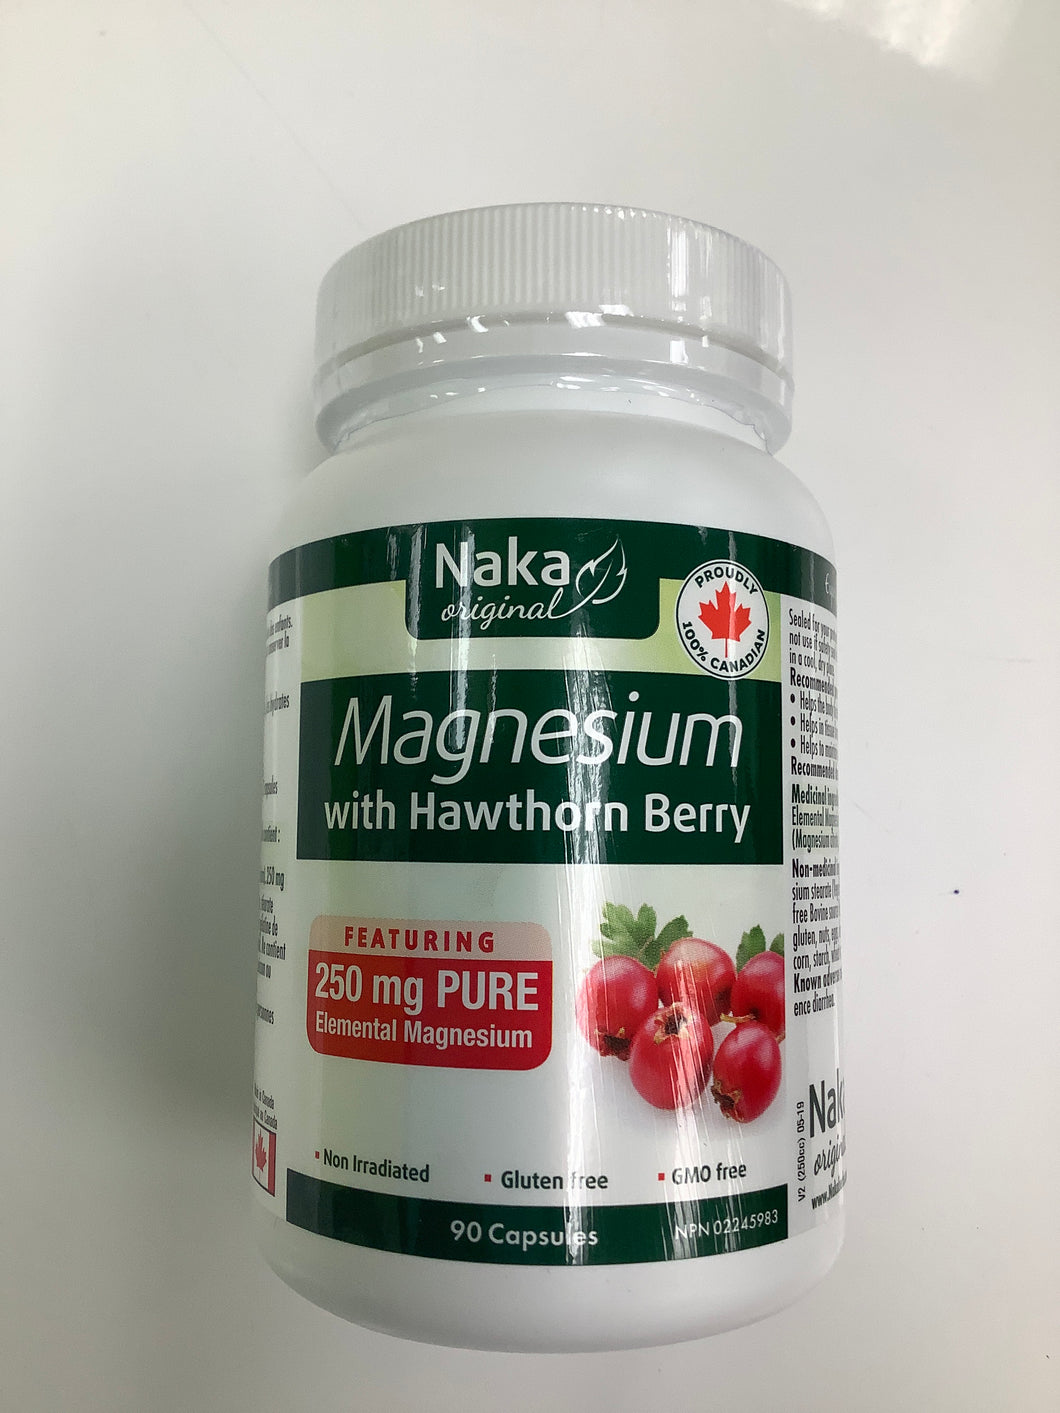 Naka Magnesium with Hawthorn Berry 90's